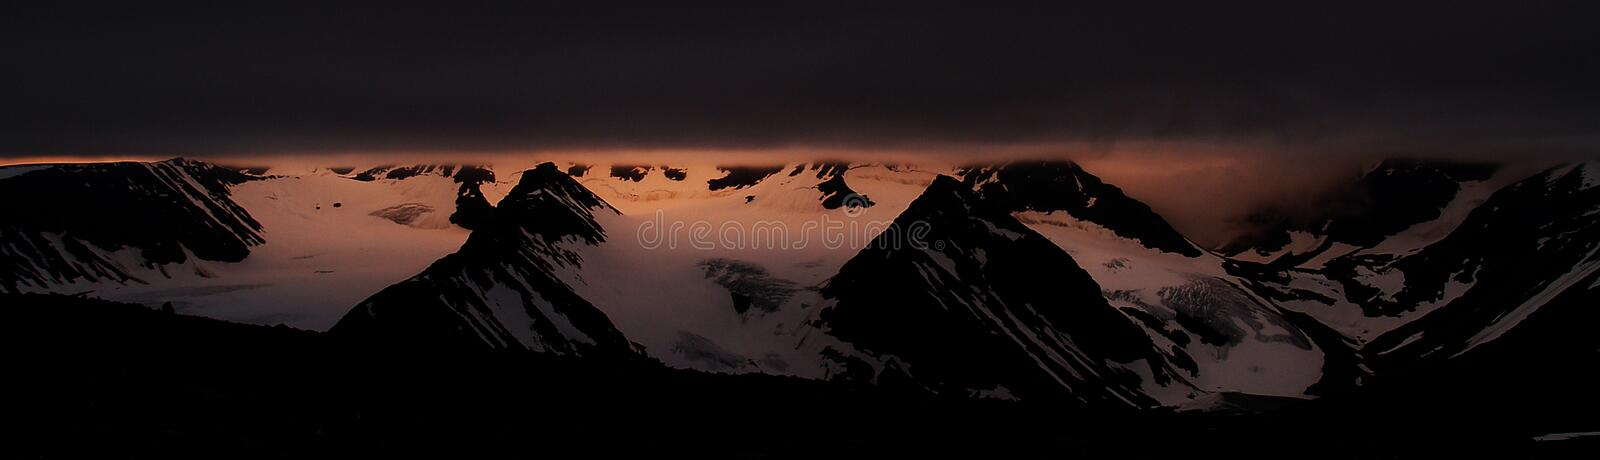 Midnight sun over the Kebnekaise peak royalty free stock image